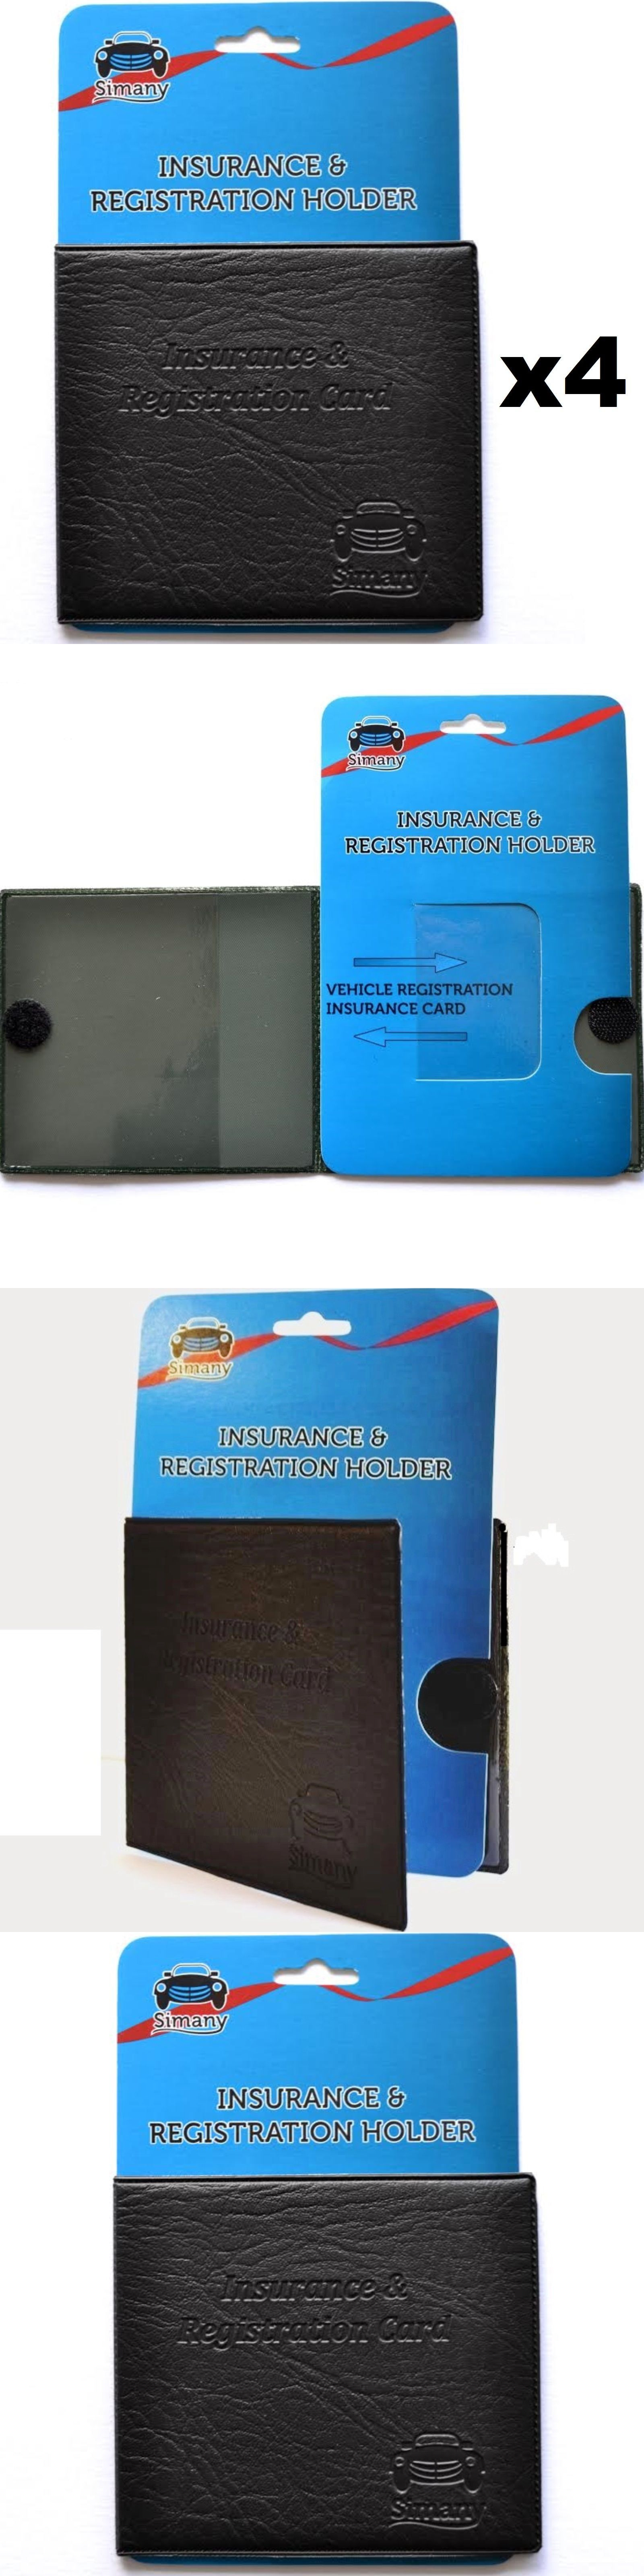 Driver License Slim Thin Leather Wallet Holder Auto Car Insurance Registration